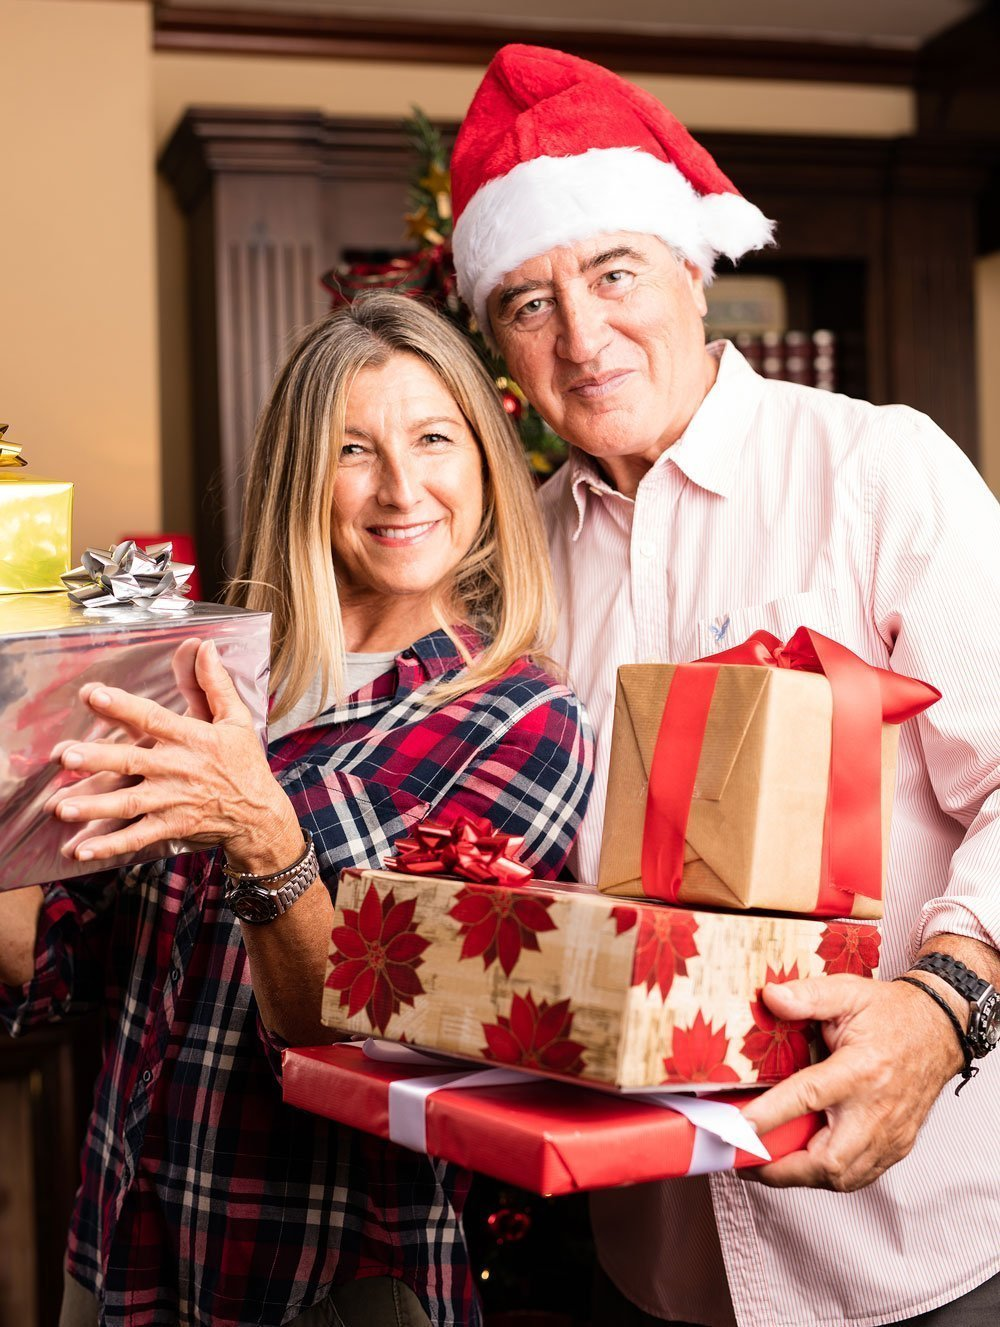 Husband & Wife holding wrapped Christmas gifts